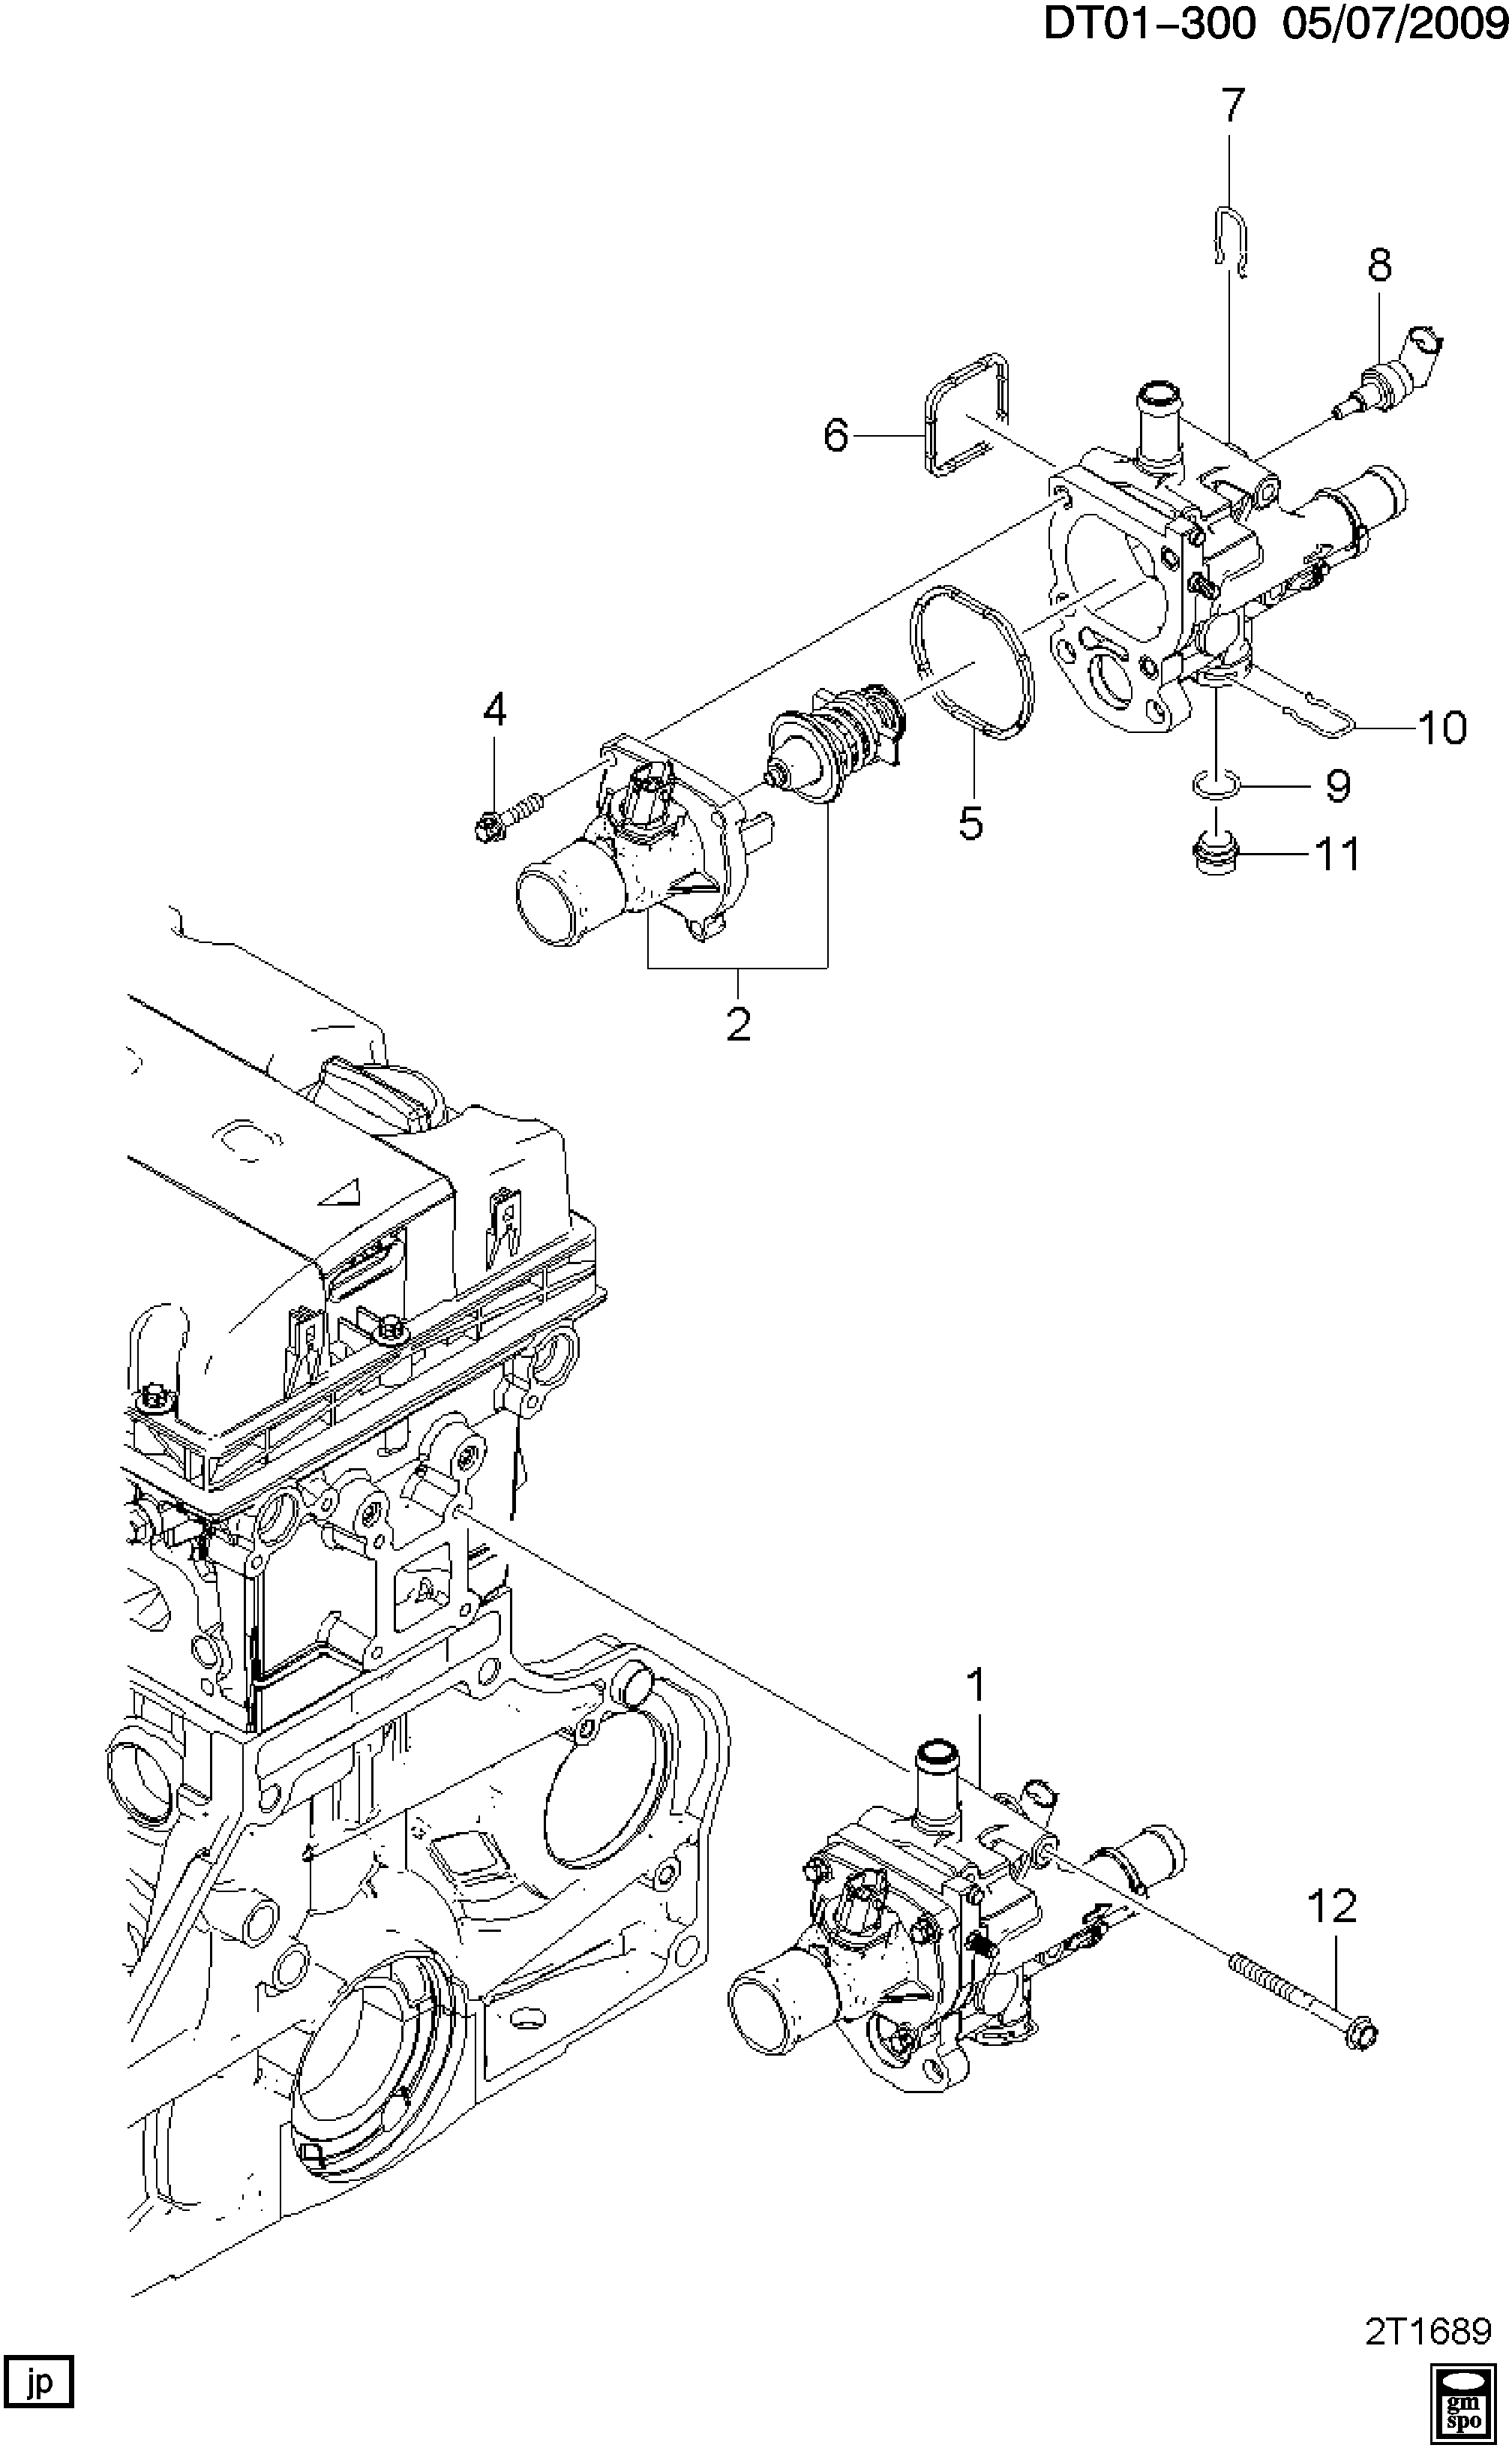 2007 chevy aveo thermostat location diagram